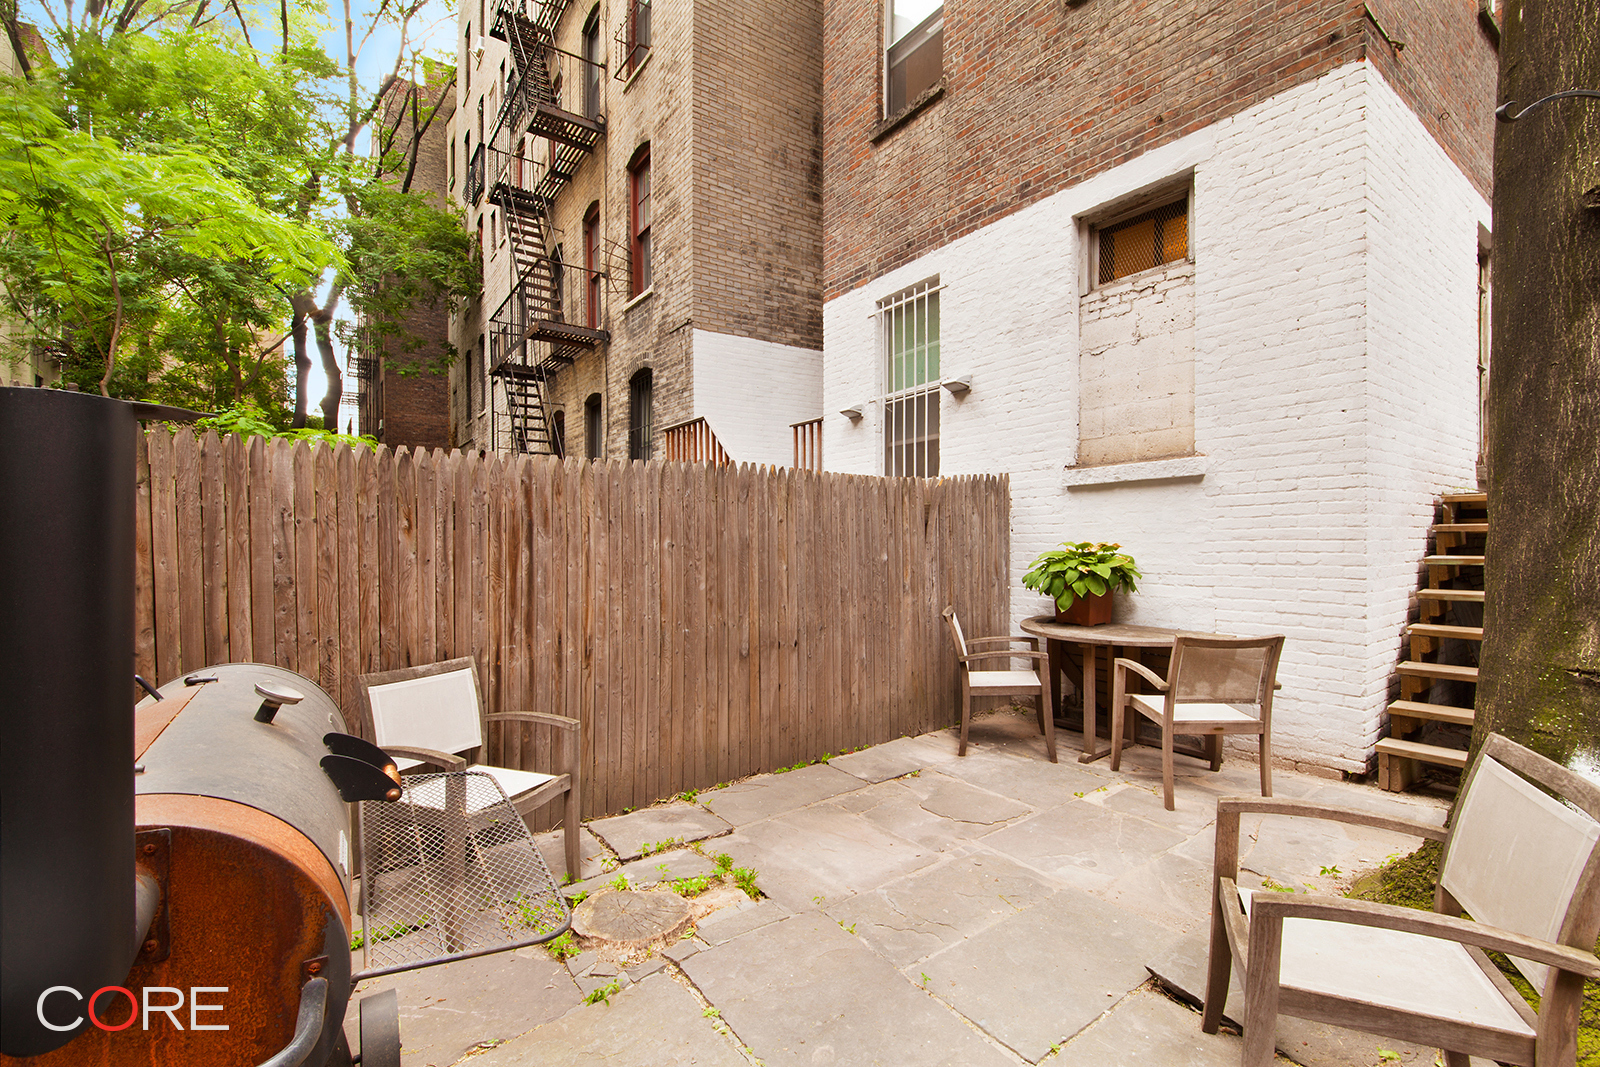 Located in the heart of Cooper Square, this one-of-a-kind, home with private backyard includes a lower, detached commercial level. Currently configured as a one-bedroom, this charming and spacious residential unit is complete with a windowed kitchen with a dishwasher, beautiful arched doorways, wood beams and built-ins throughout. The unique architectural layout includes two residential entrances with ample space for a second bedroom/home office and an additional separate dining room. It is currently leased for 1 year at $5,000 per month.  The windowed commercial retail has a private street entrance as well as a building entrance and a private half bath. Currently leased at $3,000 per month.  The total rent for this property is $8,000/month and has a cap rate of 4%.   Alternatively, the two levels can be connected internally to create one 1,425-square-foot home with a private backyard. Building amenities include a full-time super as well as a resident's laundry room. This property is  accessible to the F/V, B/D and 6 trains.